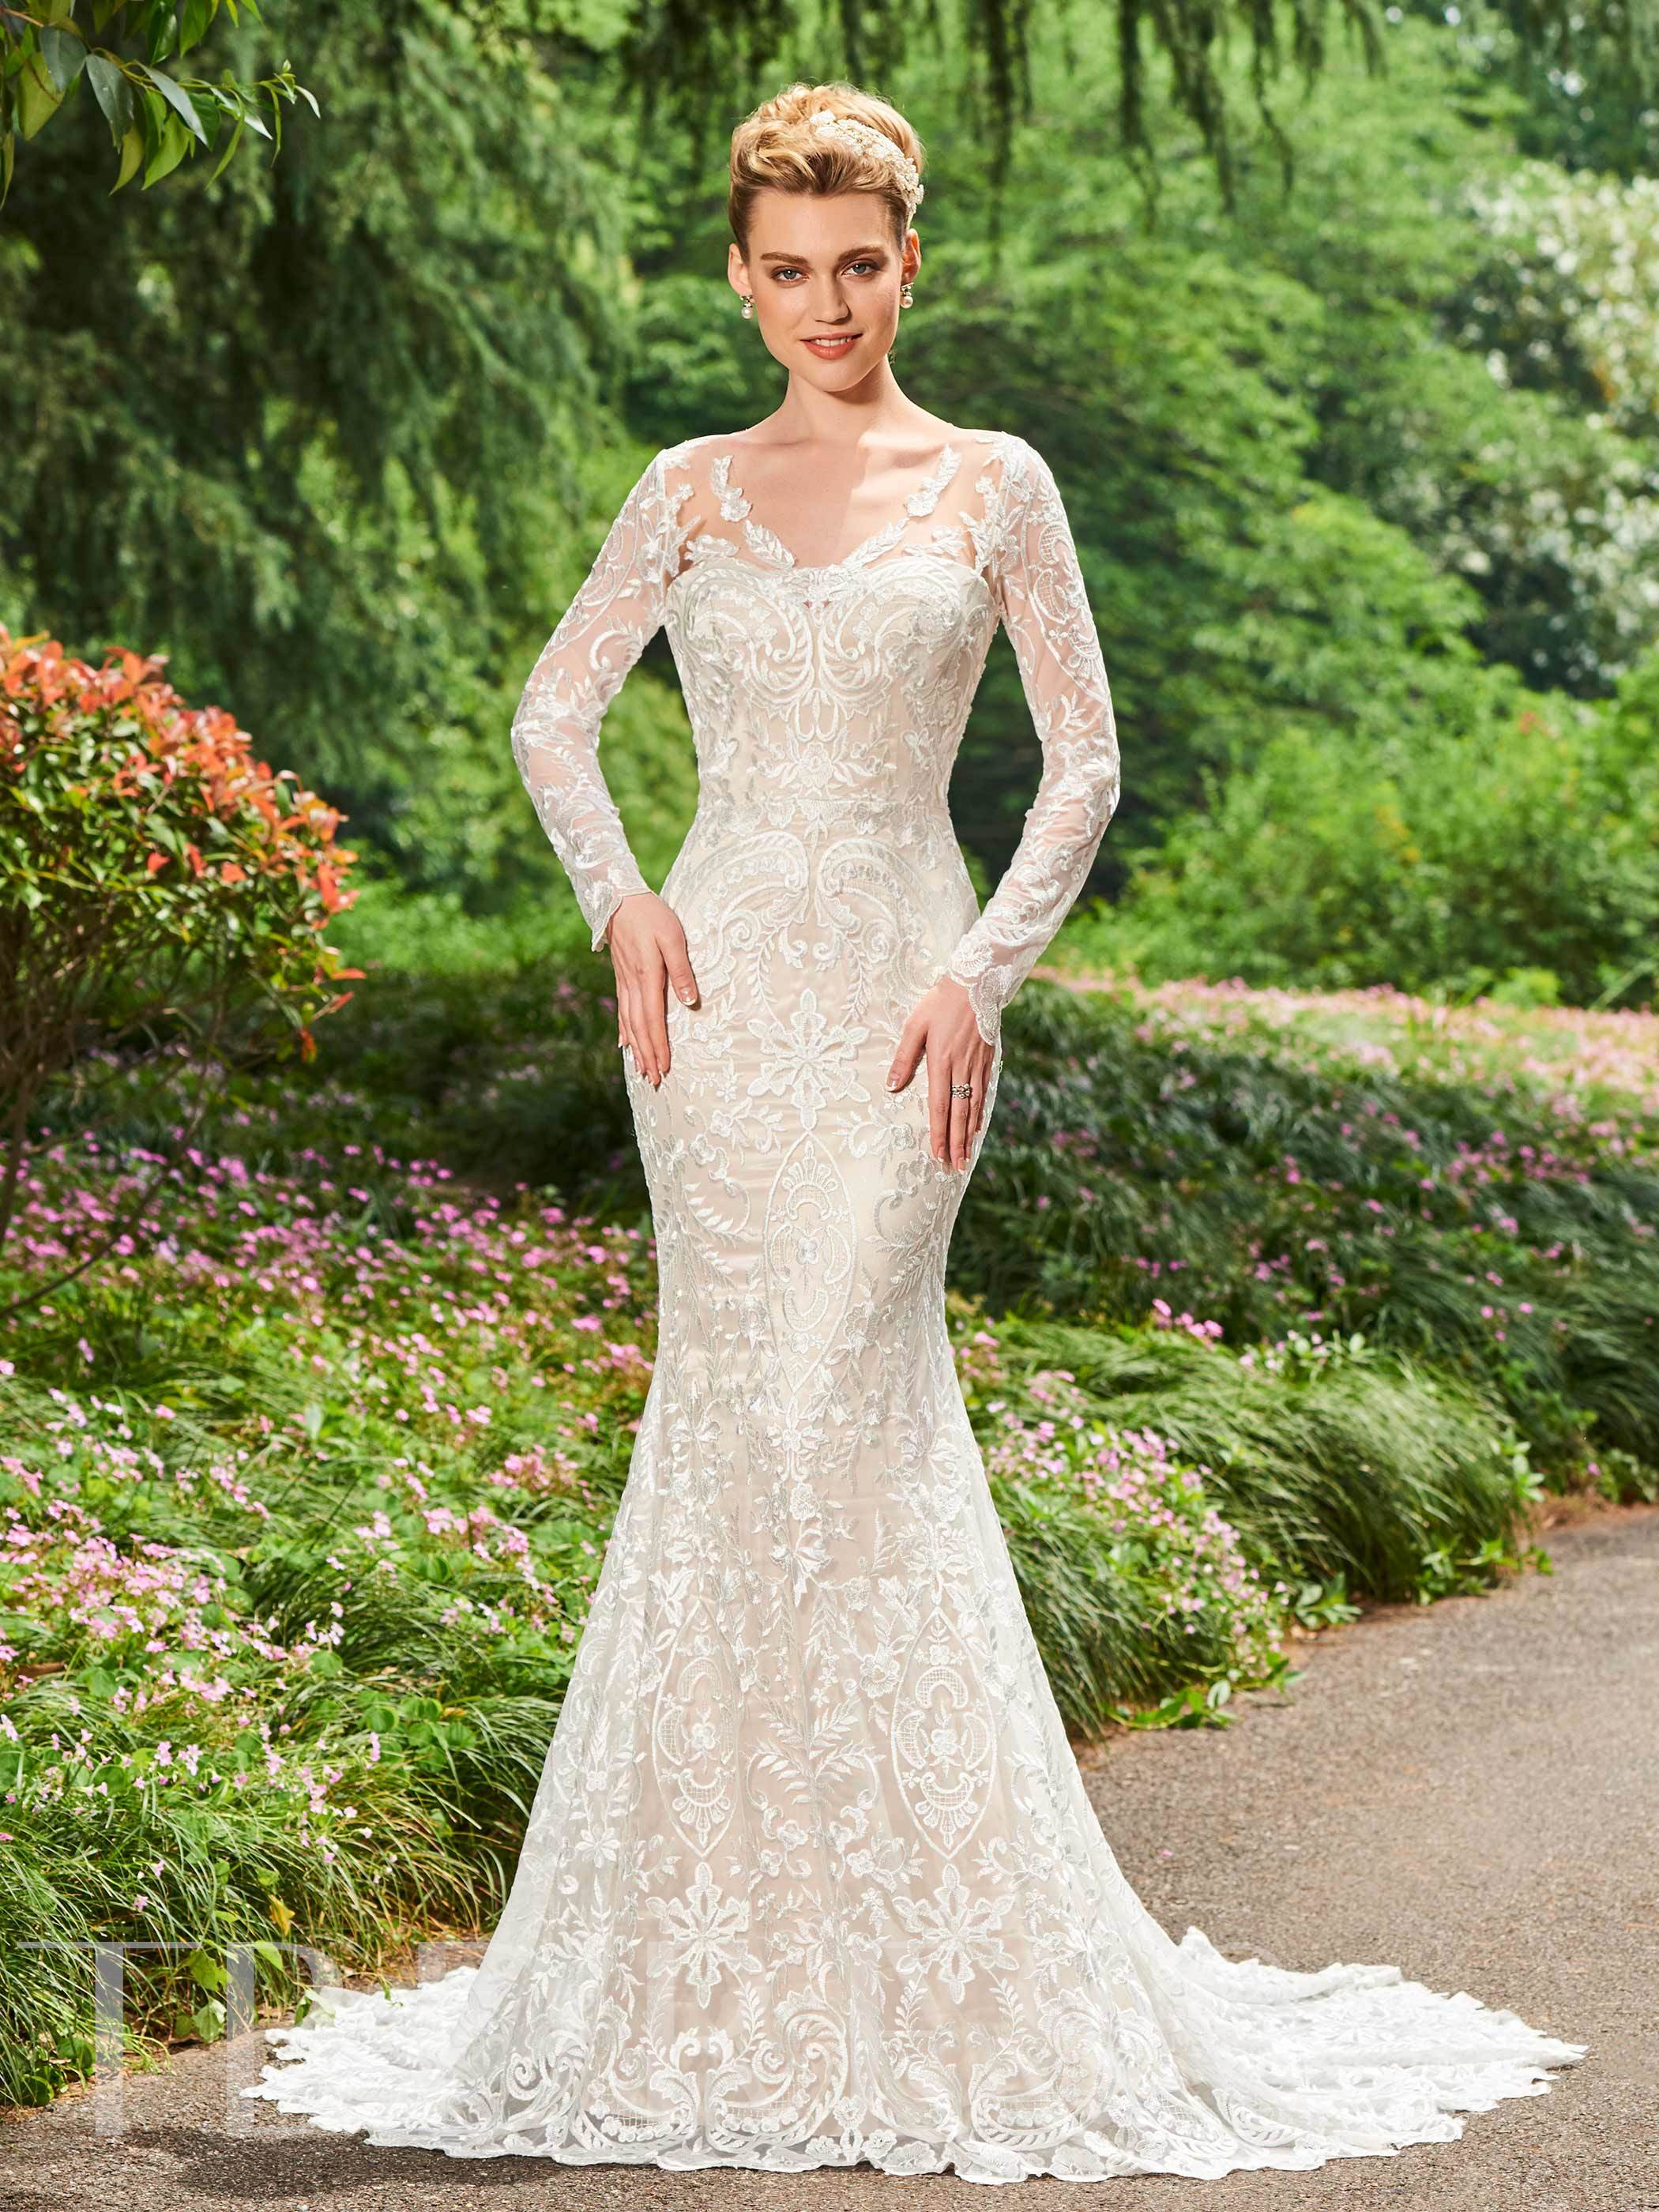 Image of Backless Long Sleeves Lace Wedding Dress